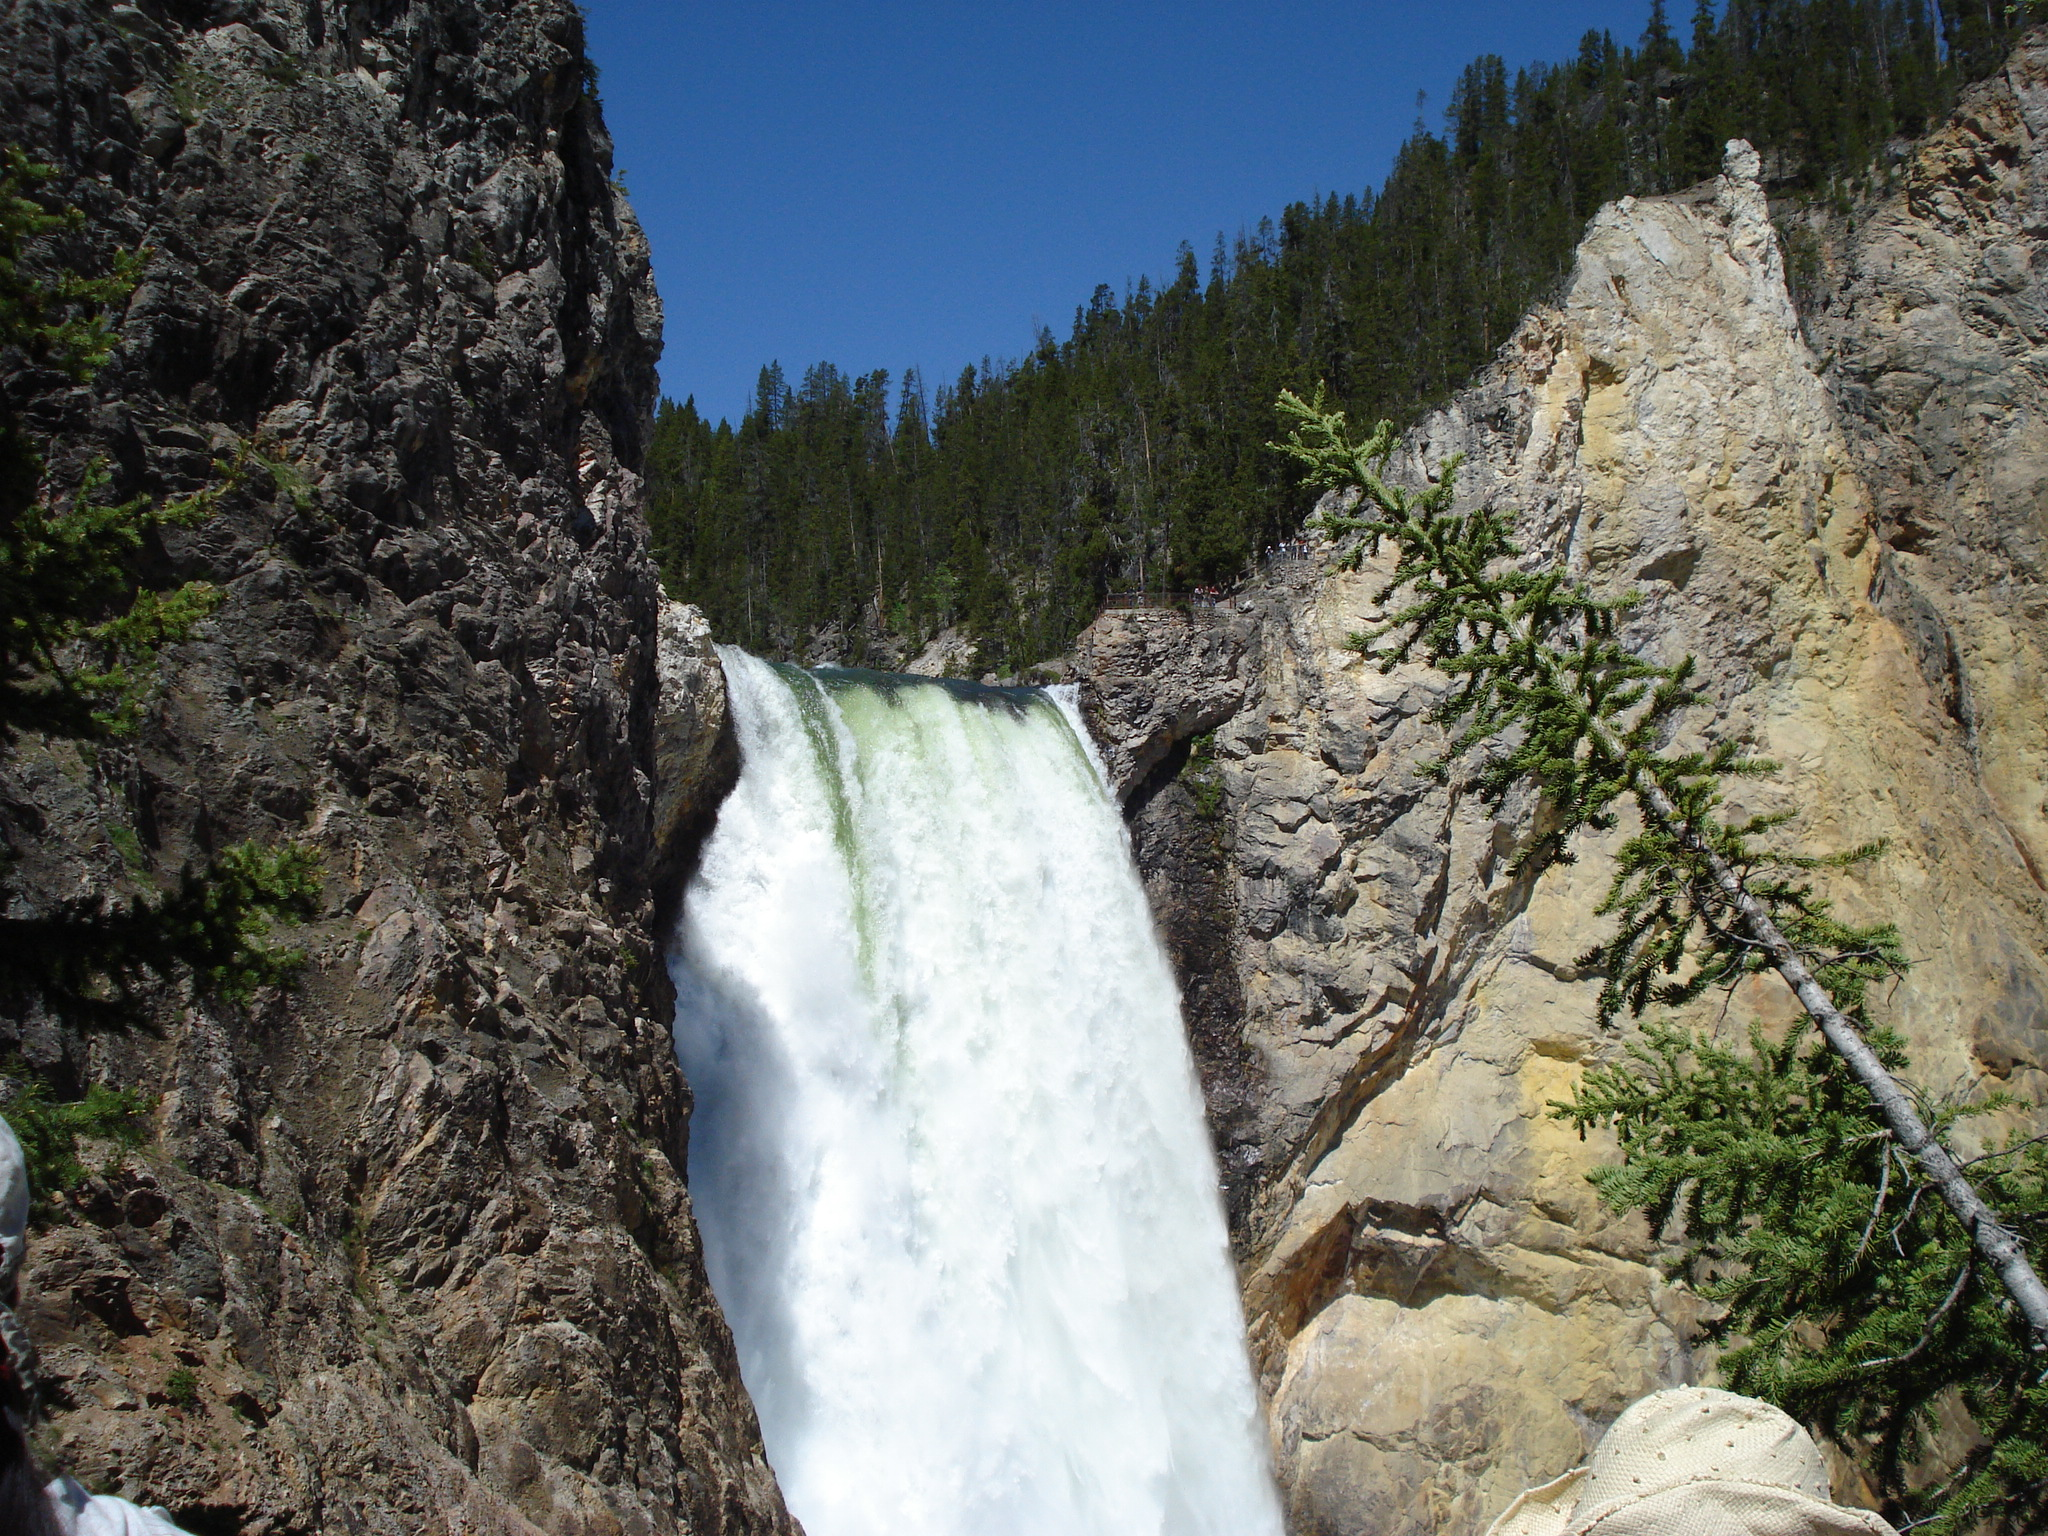 Waterfalls in Yellowstone are Beautiful